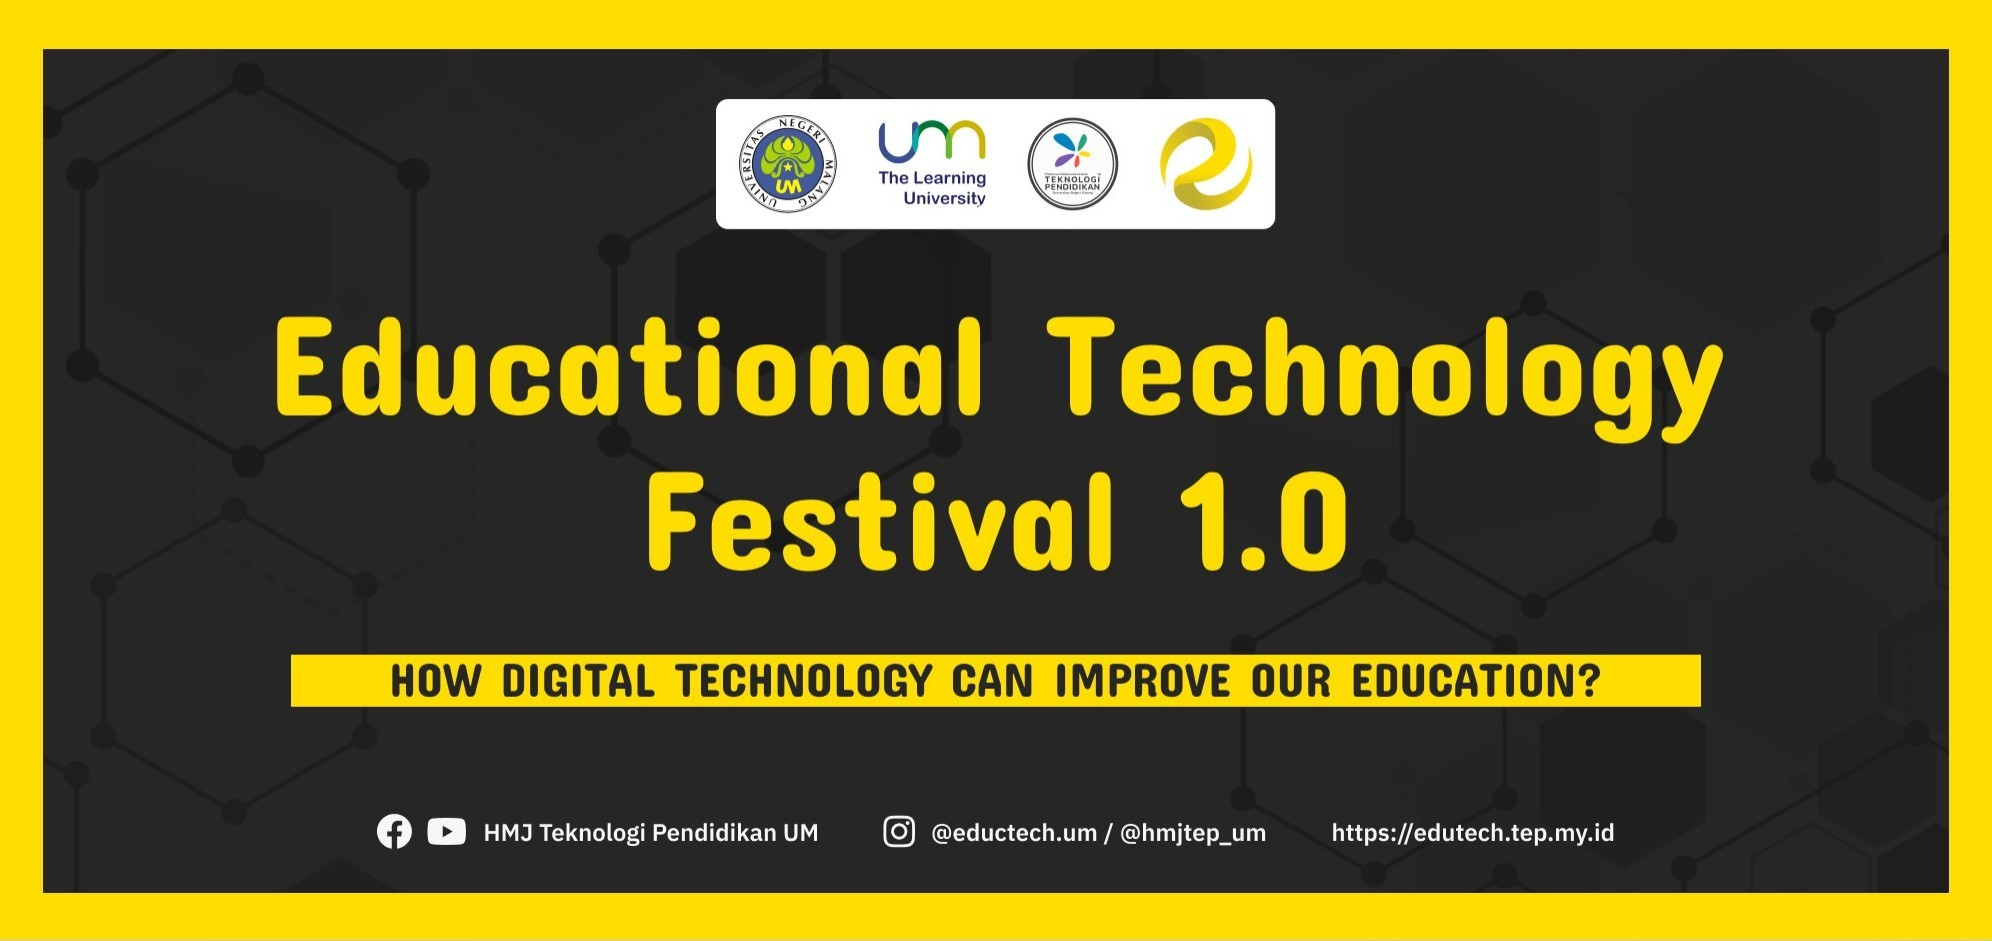 Educational Technology Festival 1.0